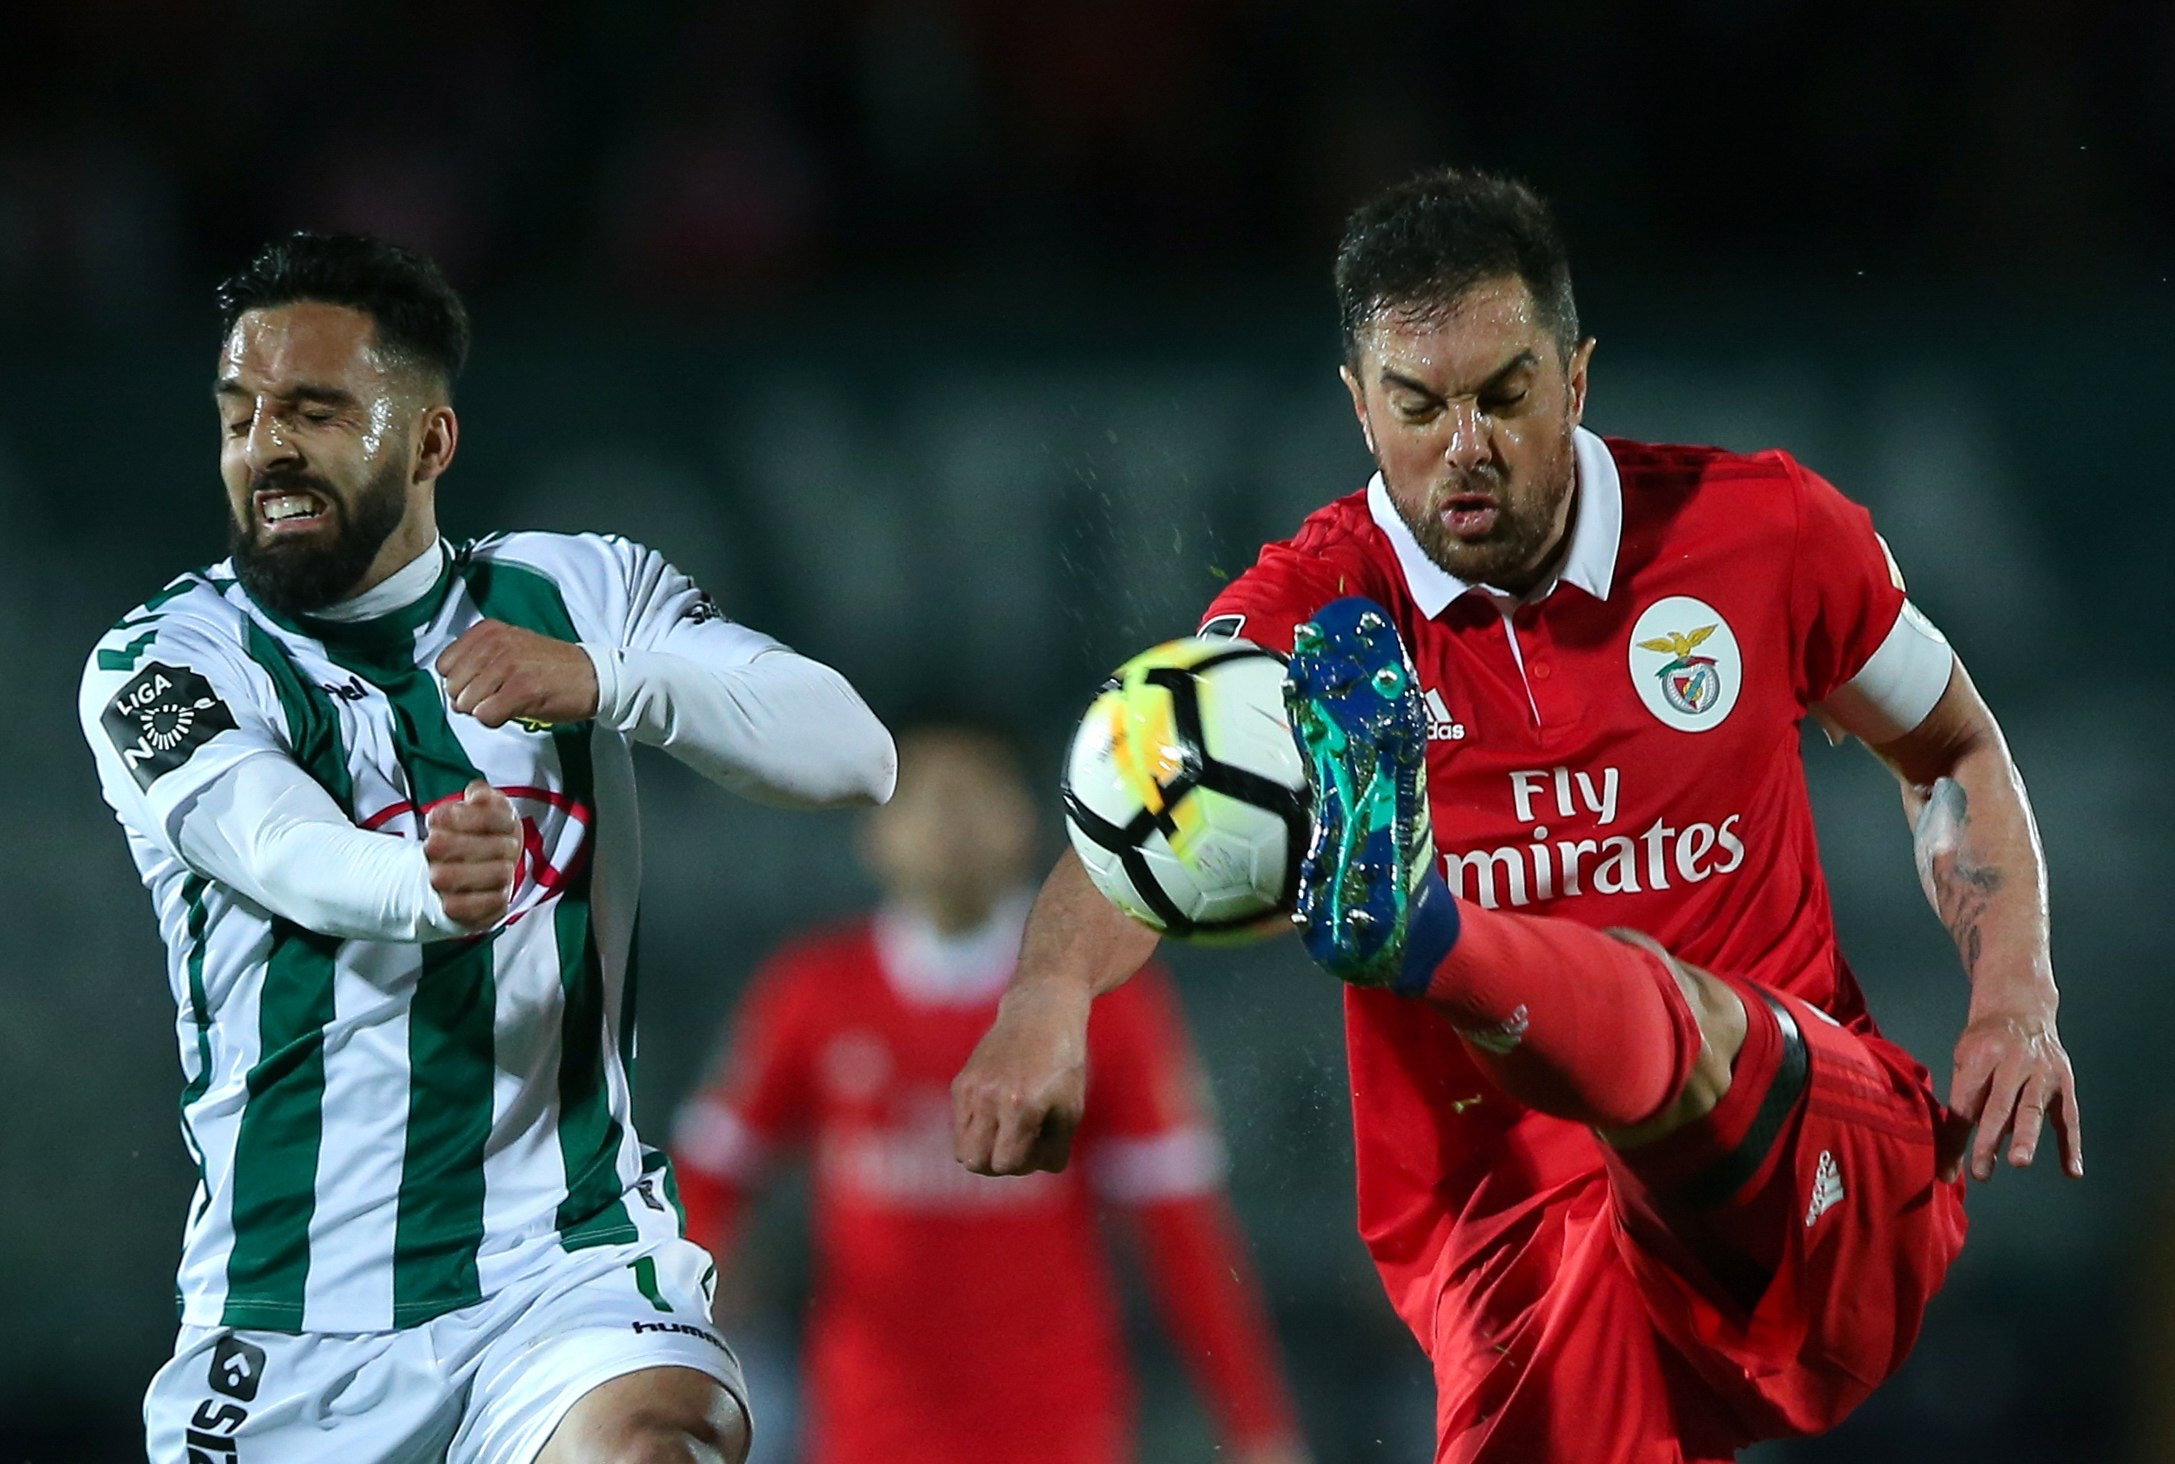 Benfica e V. Setúbal disputam Torneio do Sado